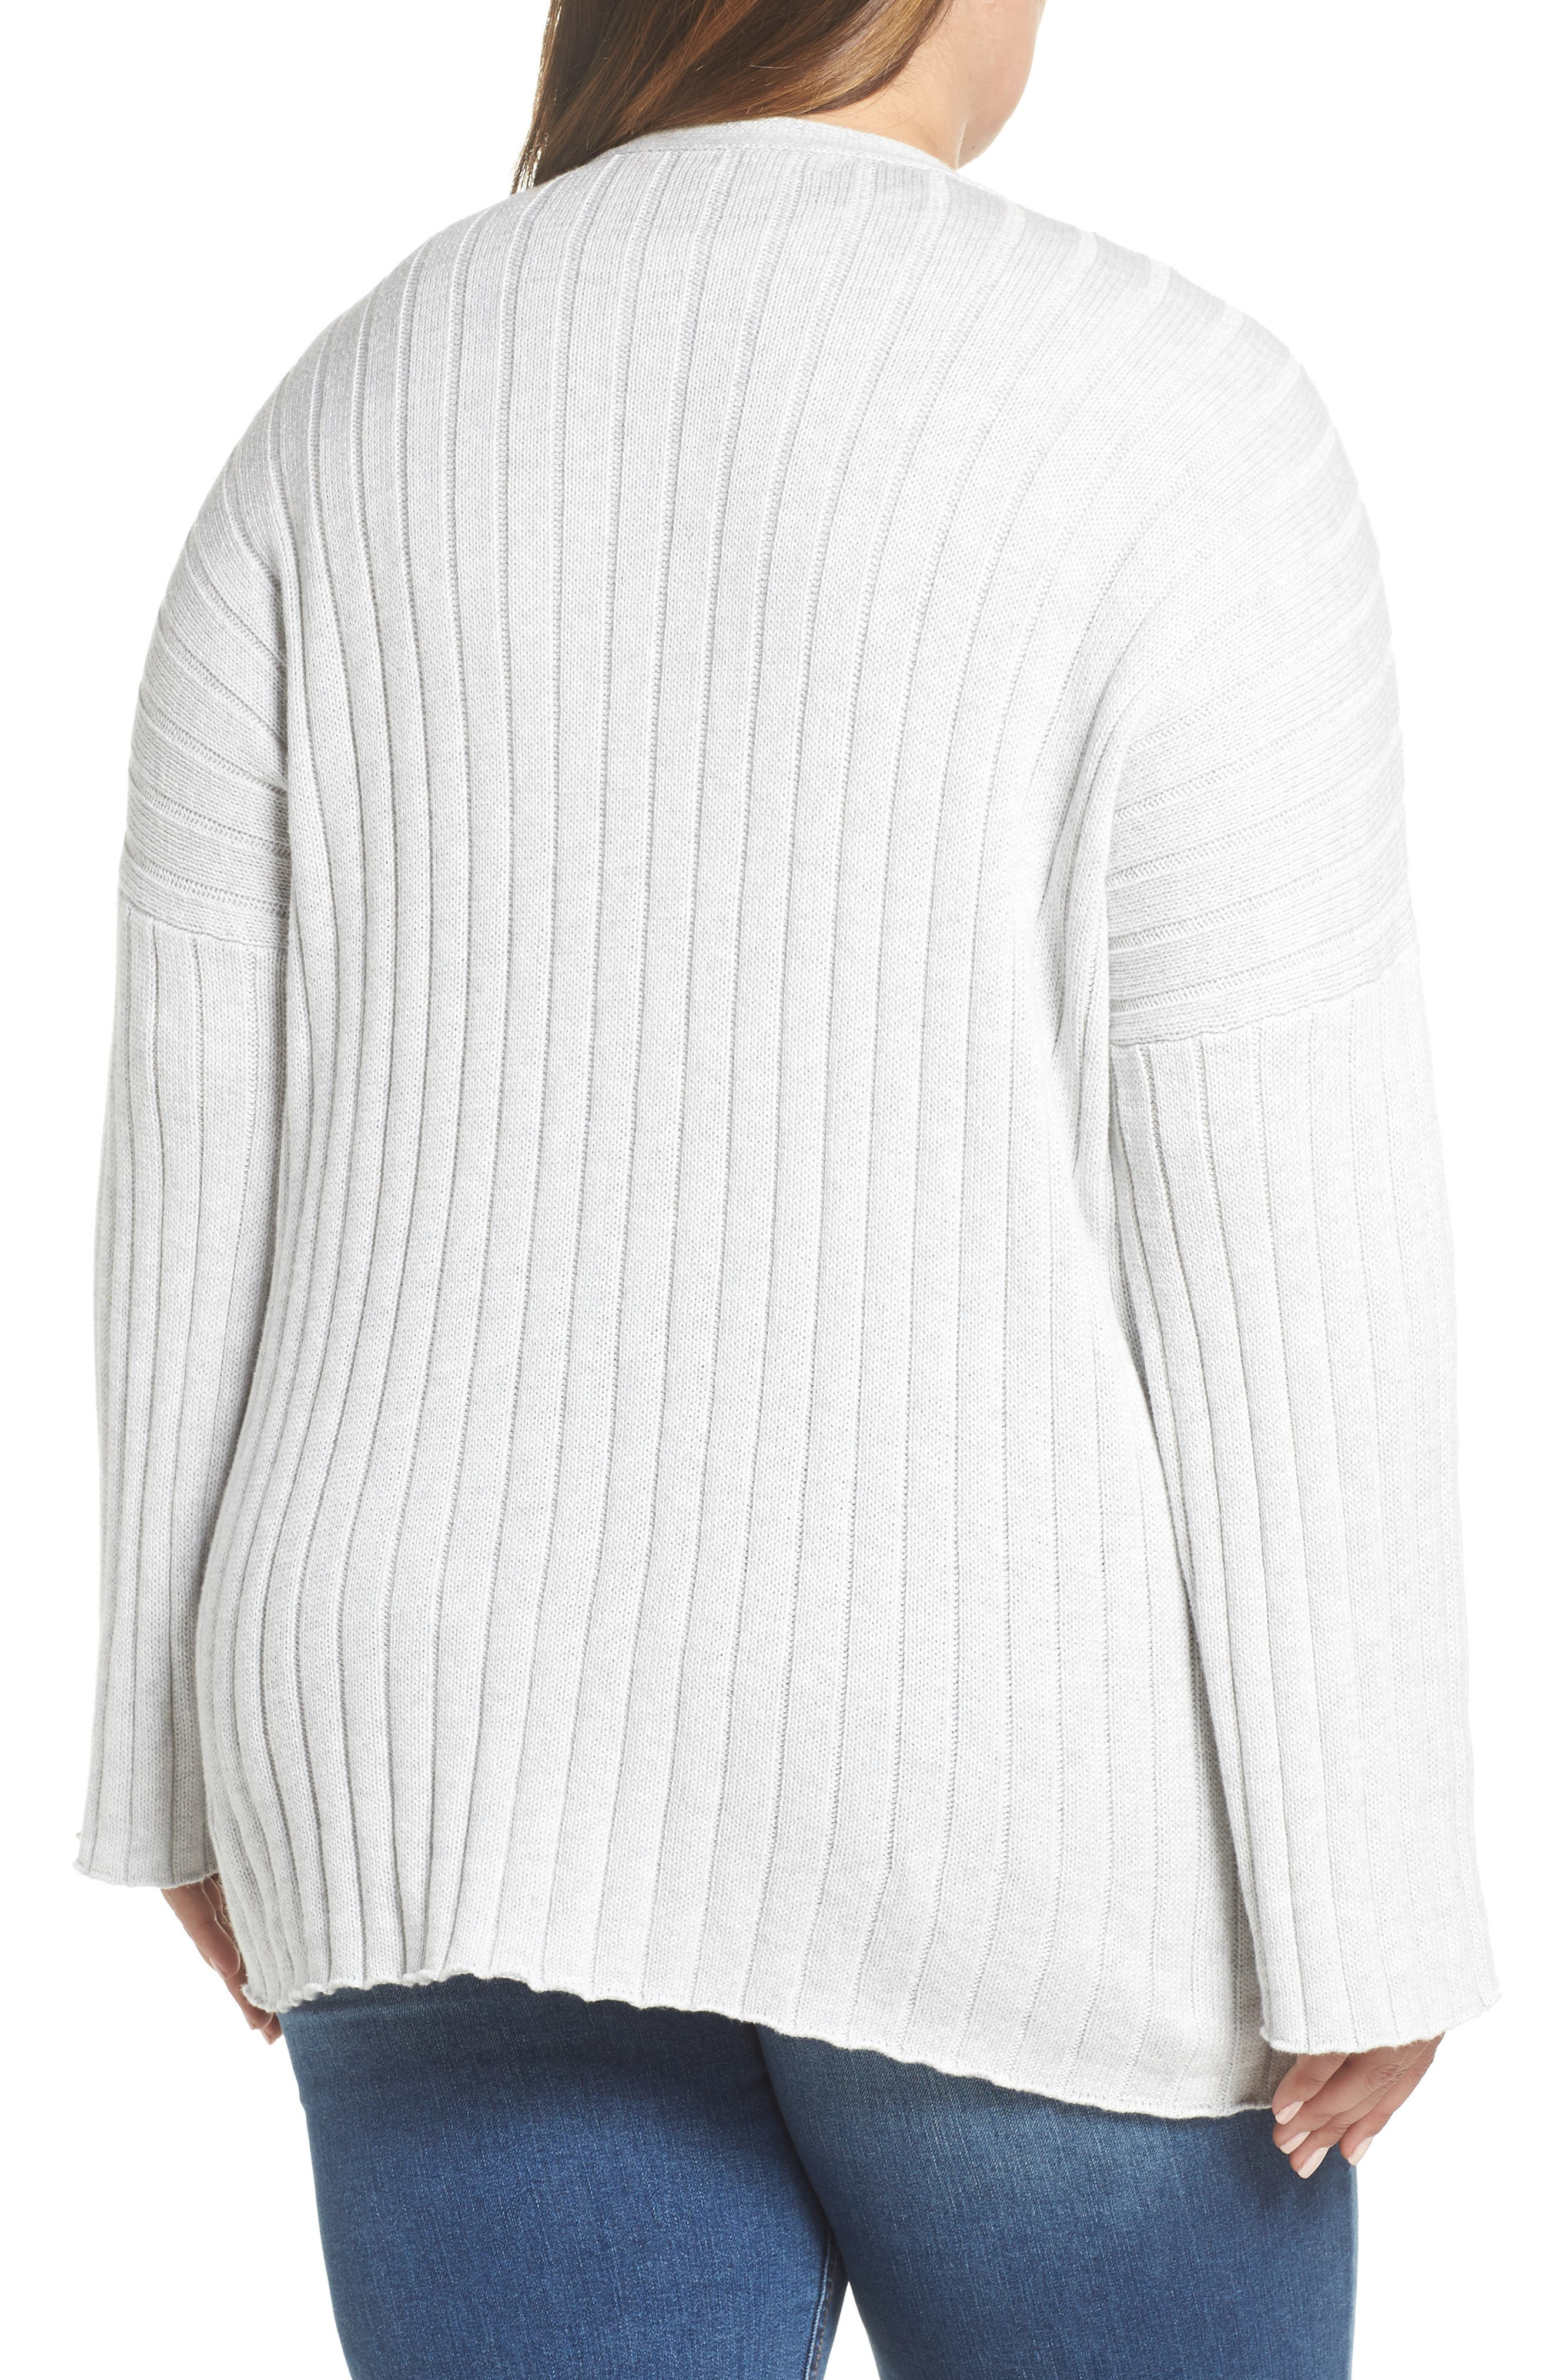 BP., Ribbed Throw On Cardigan, Alternate thumbnail 8, color, GREY QUIET HEATHER